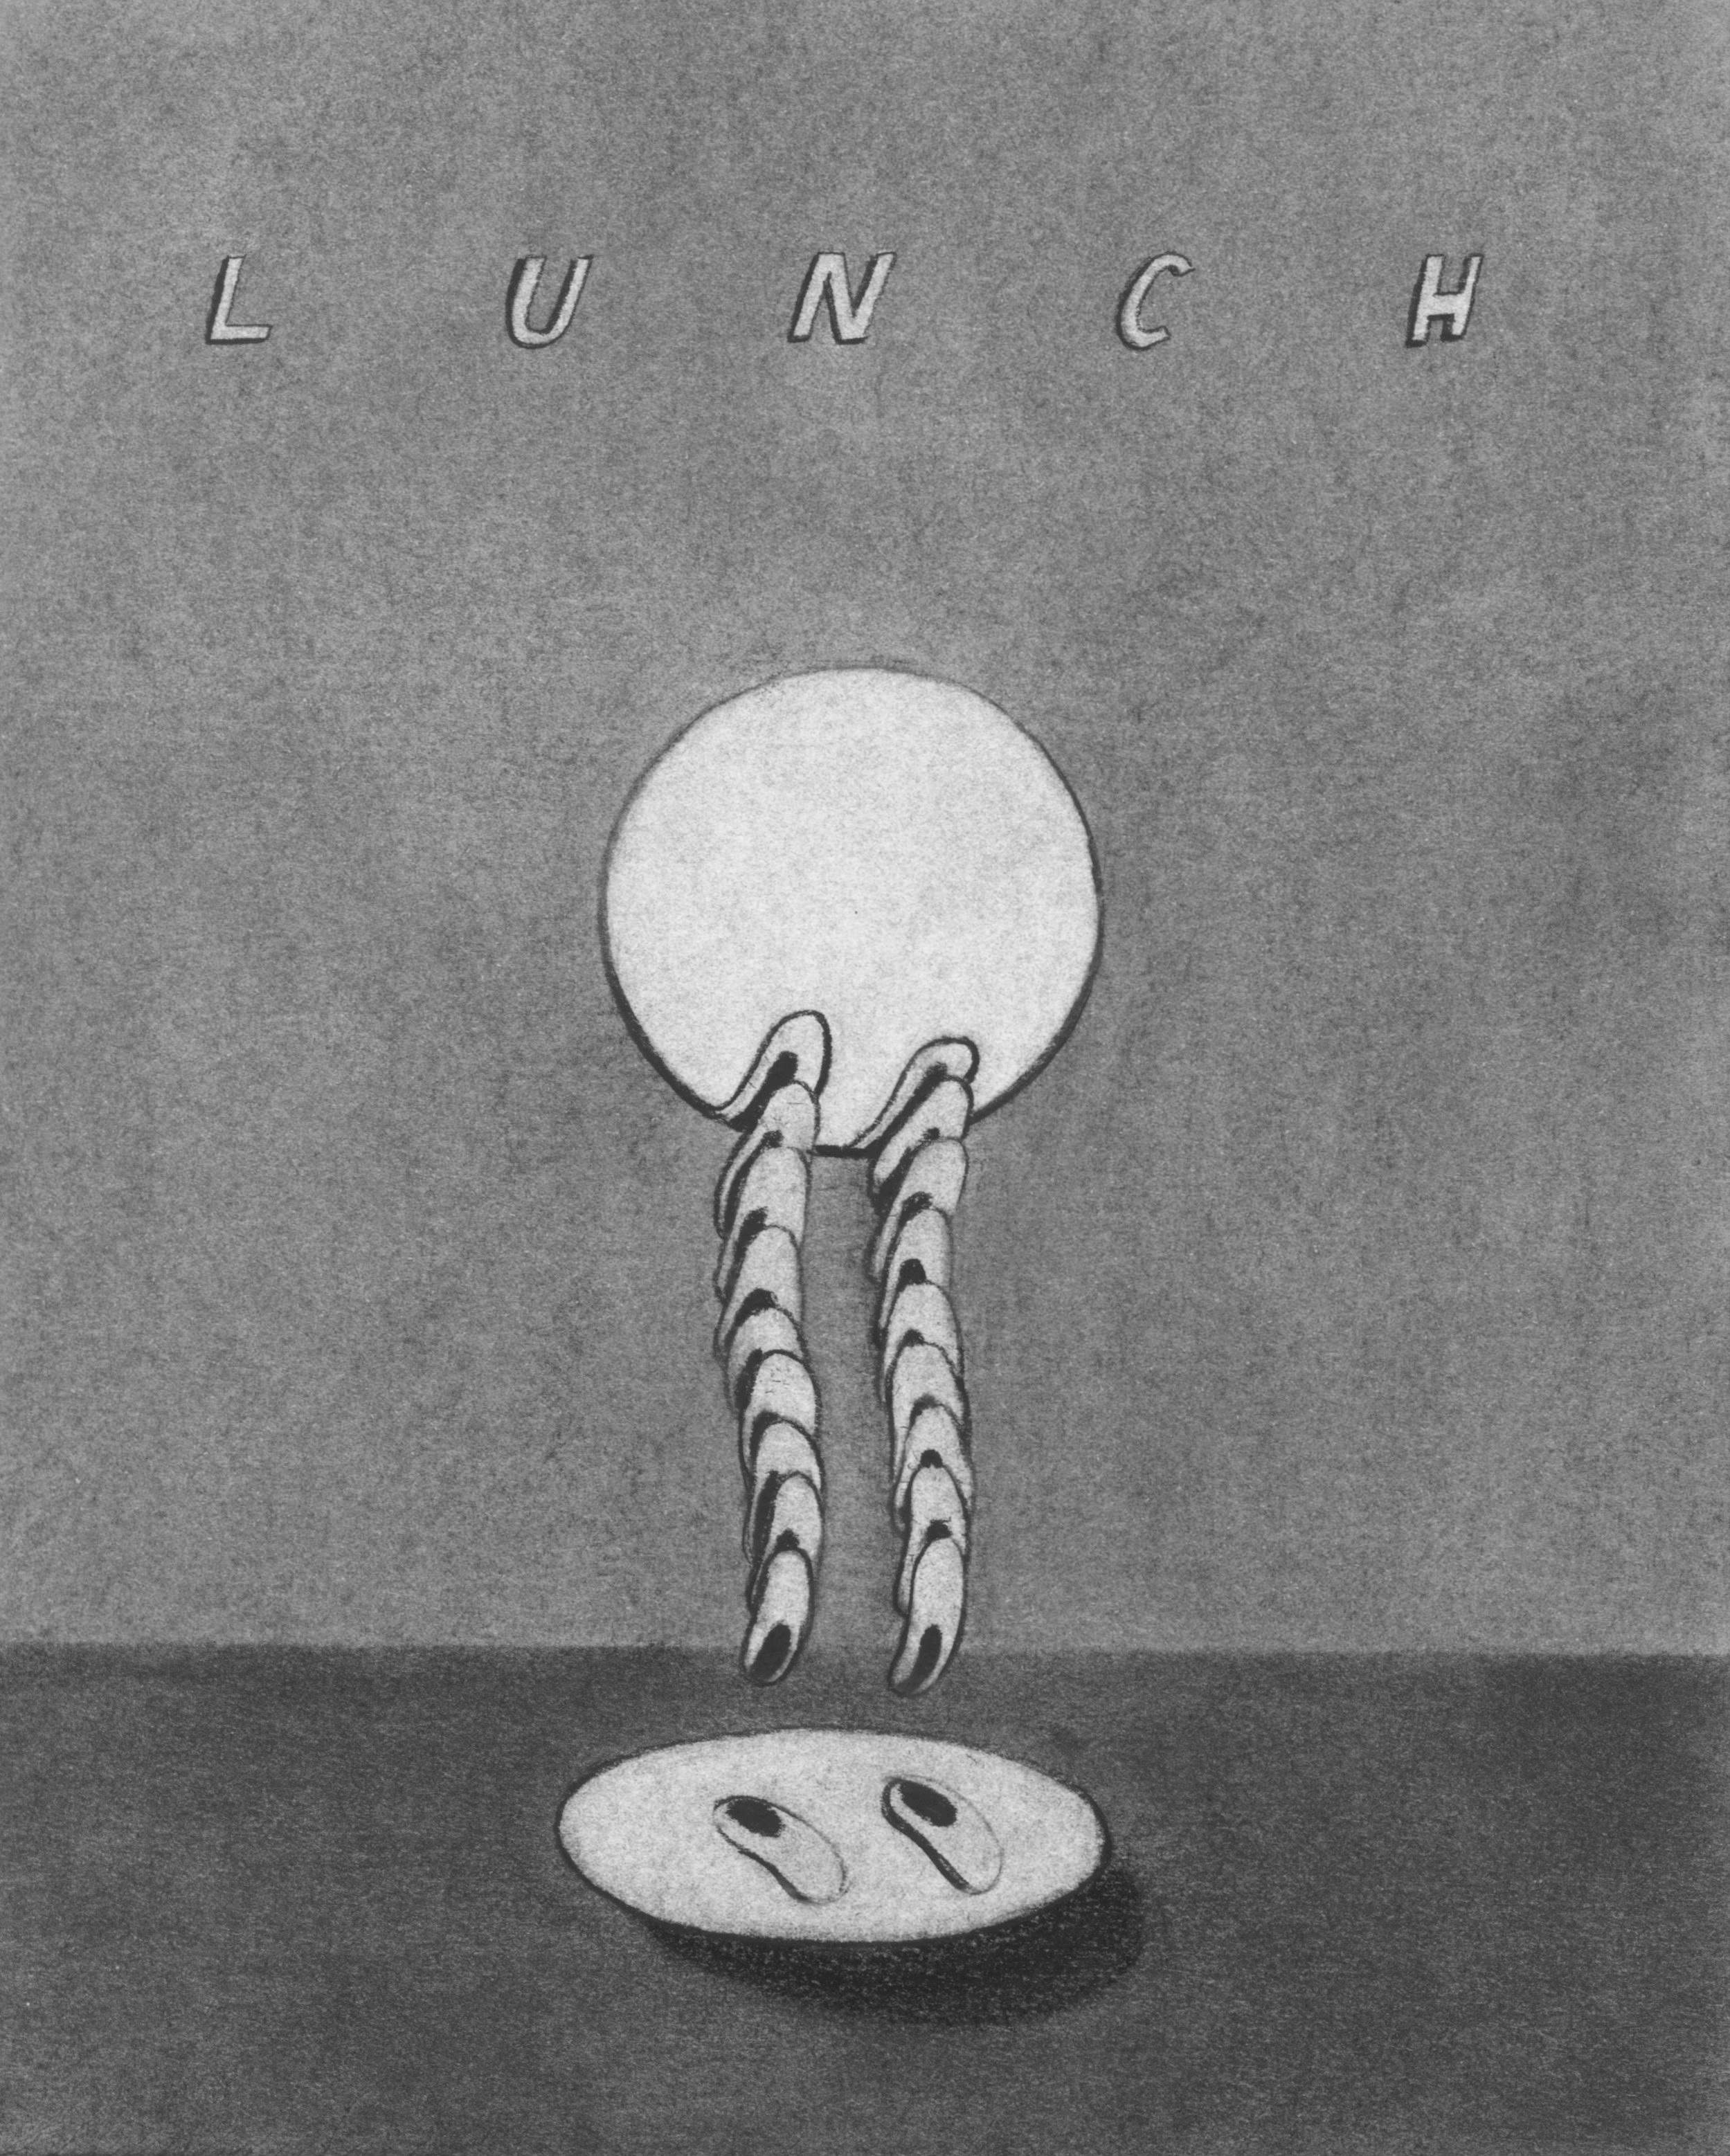 Lunch  | Charcoal on paper | 9 x 12 | 2014